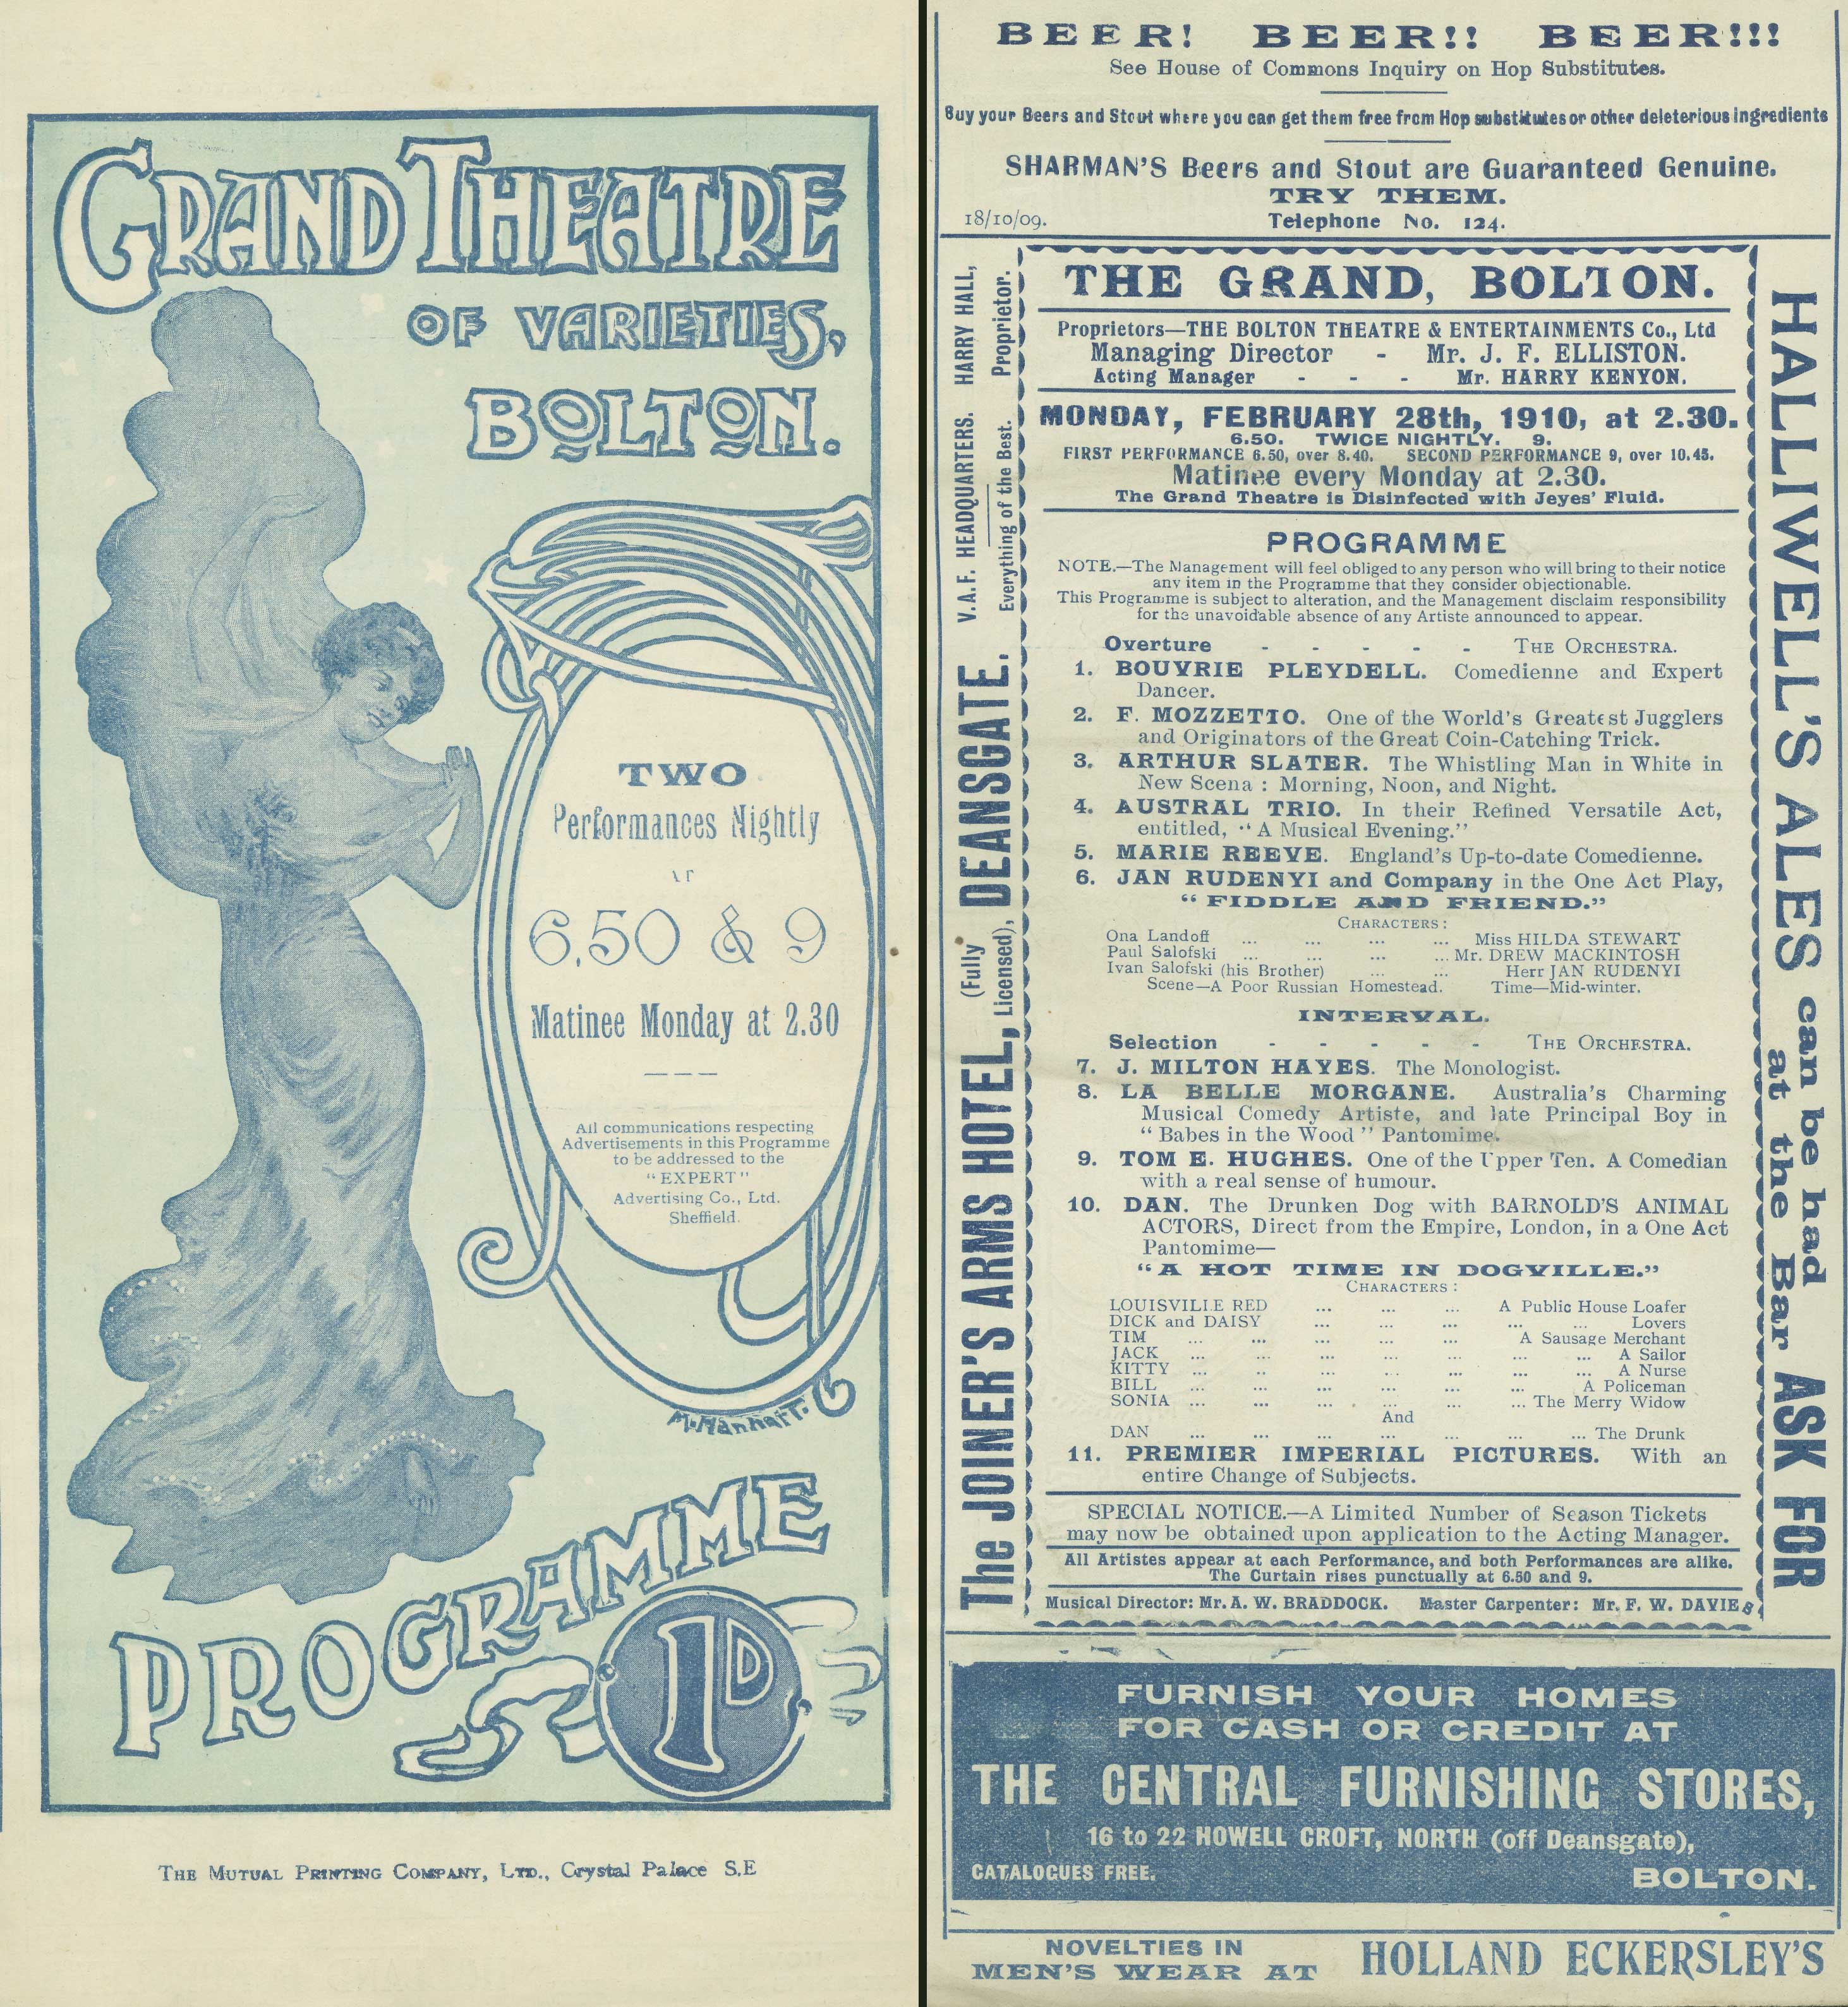 Bolton Grand Theatre of Varieties programme